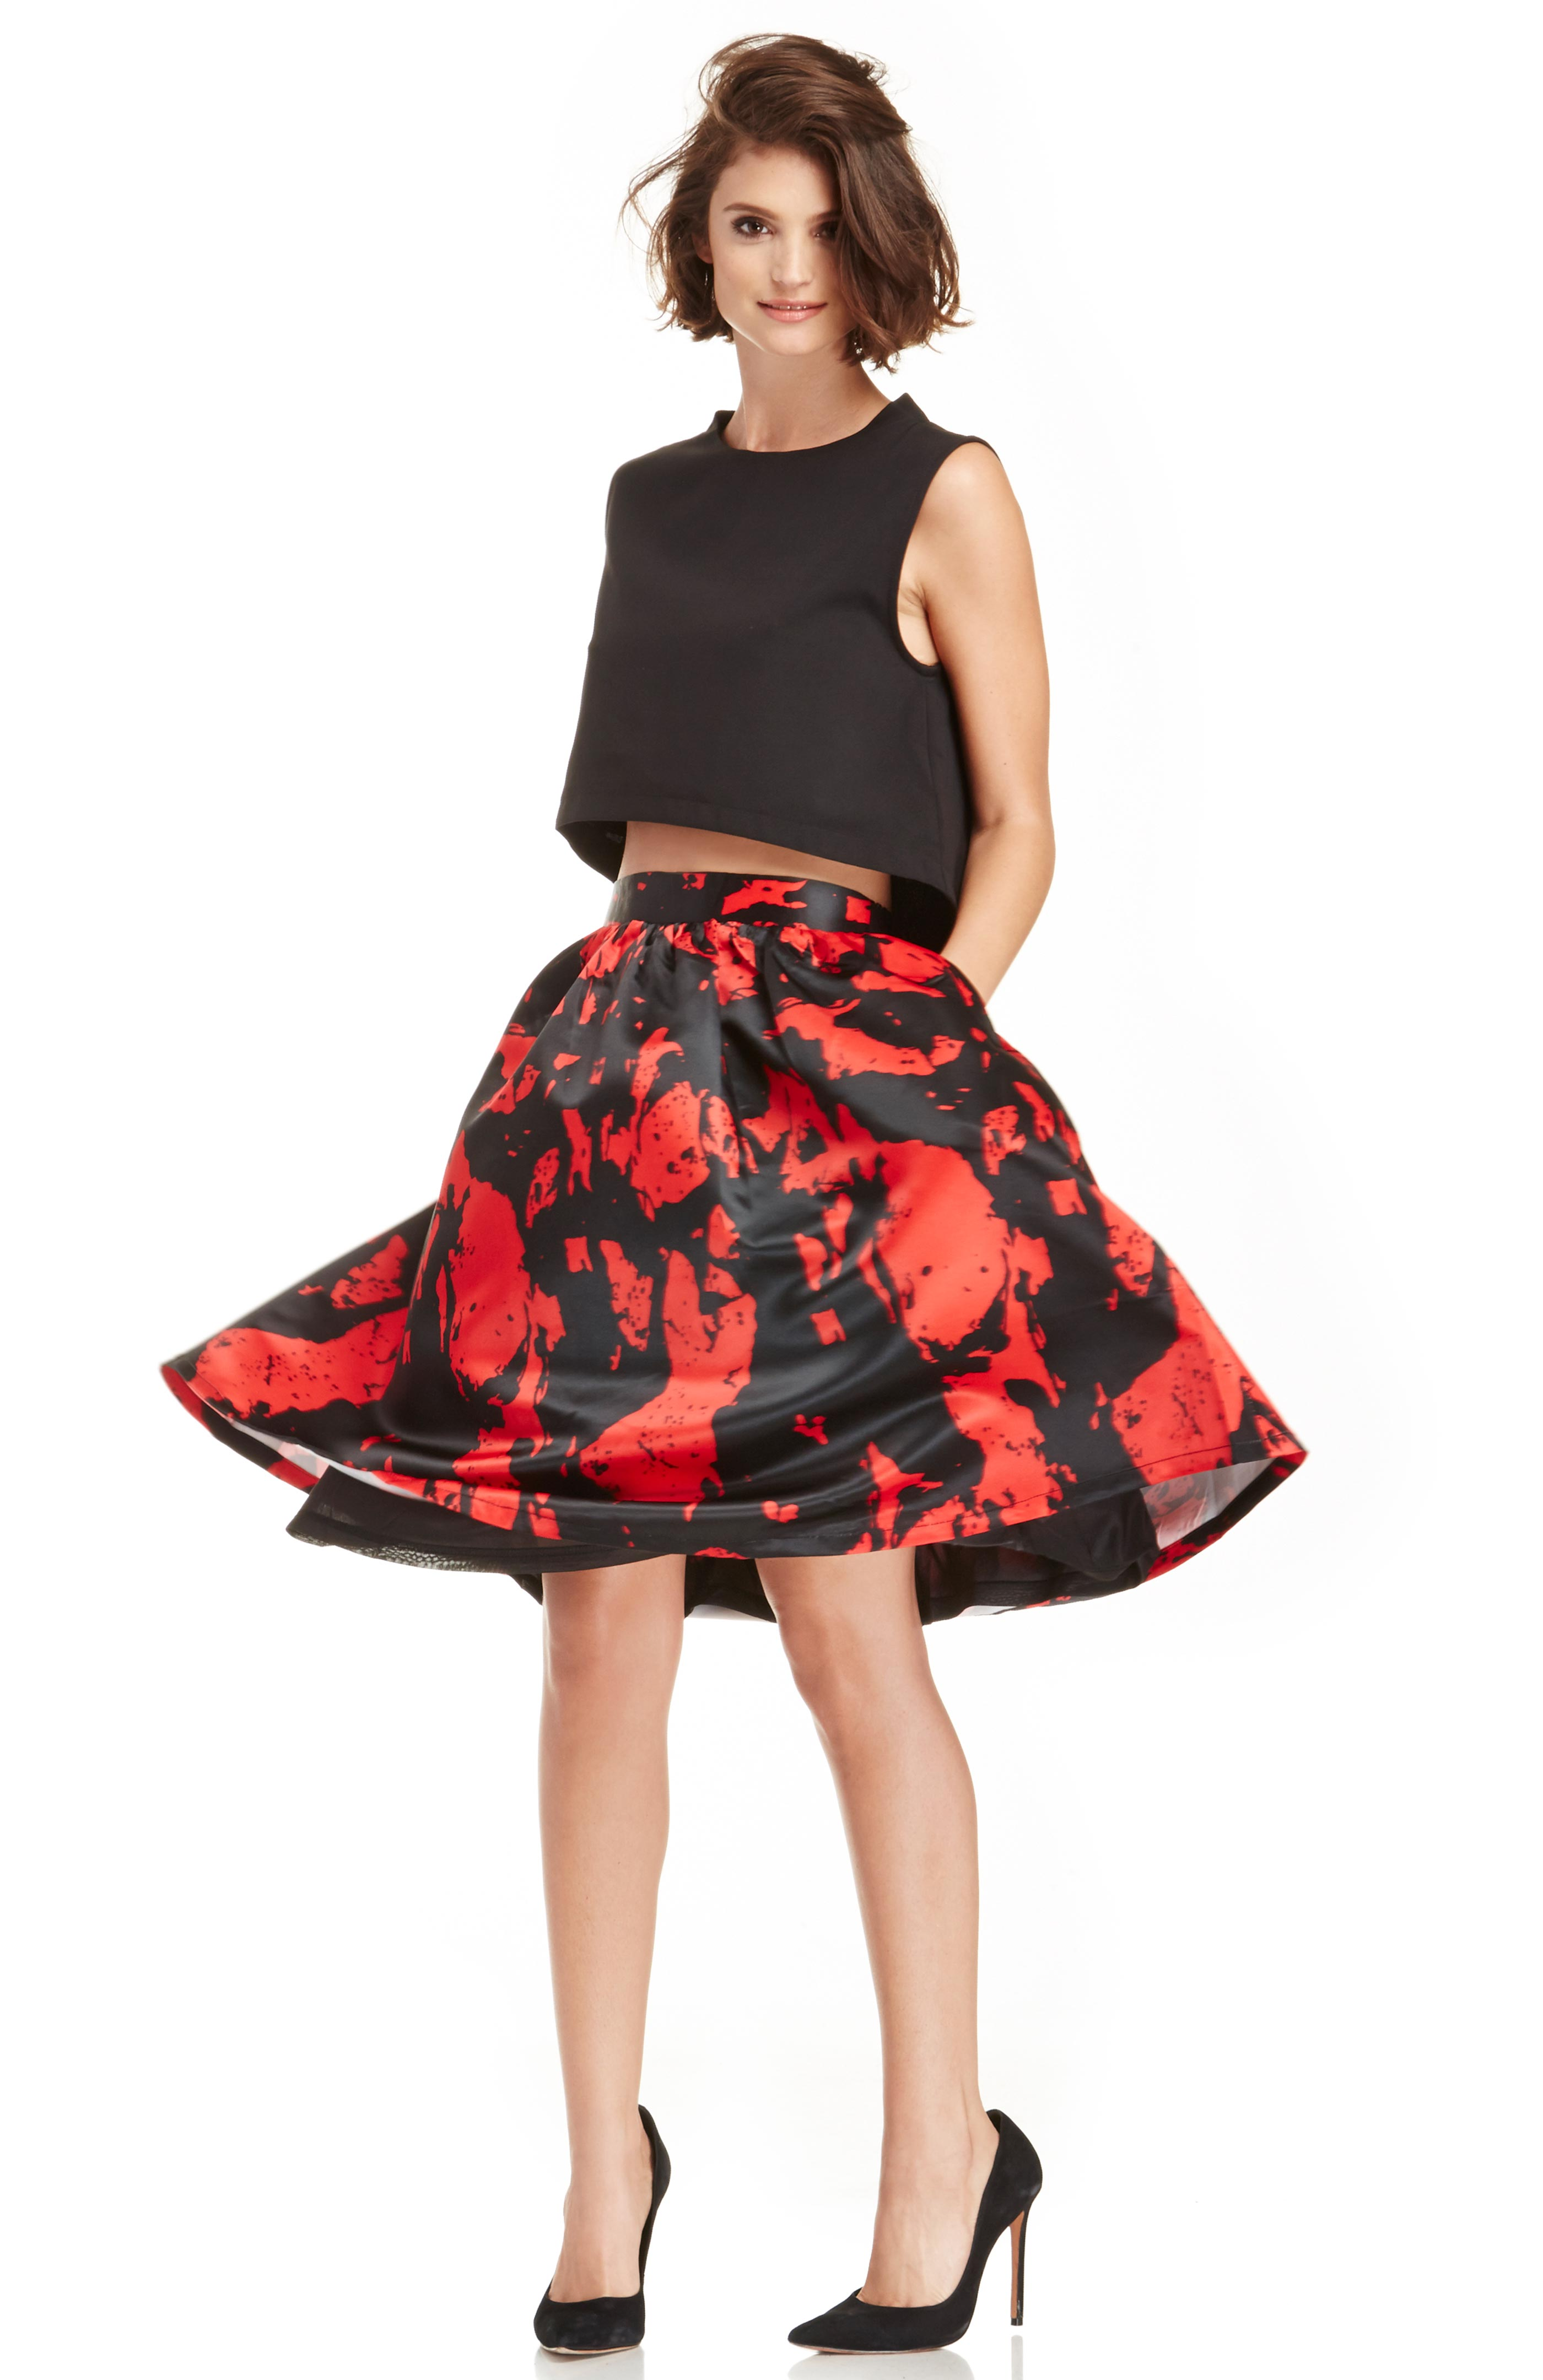 Lucy Paris Stone Patterned Circle Skirt in Black/Red S - L at DAILYLOOK